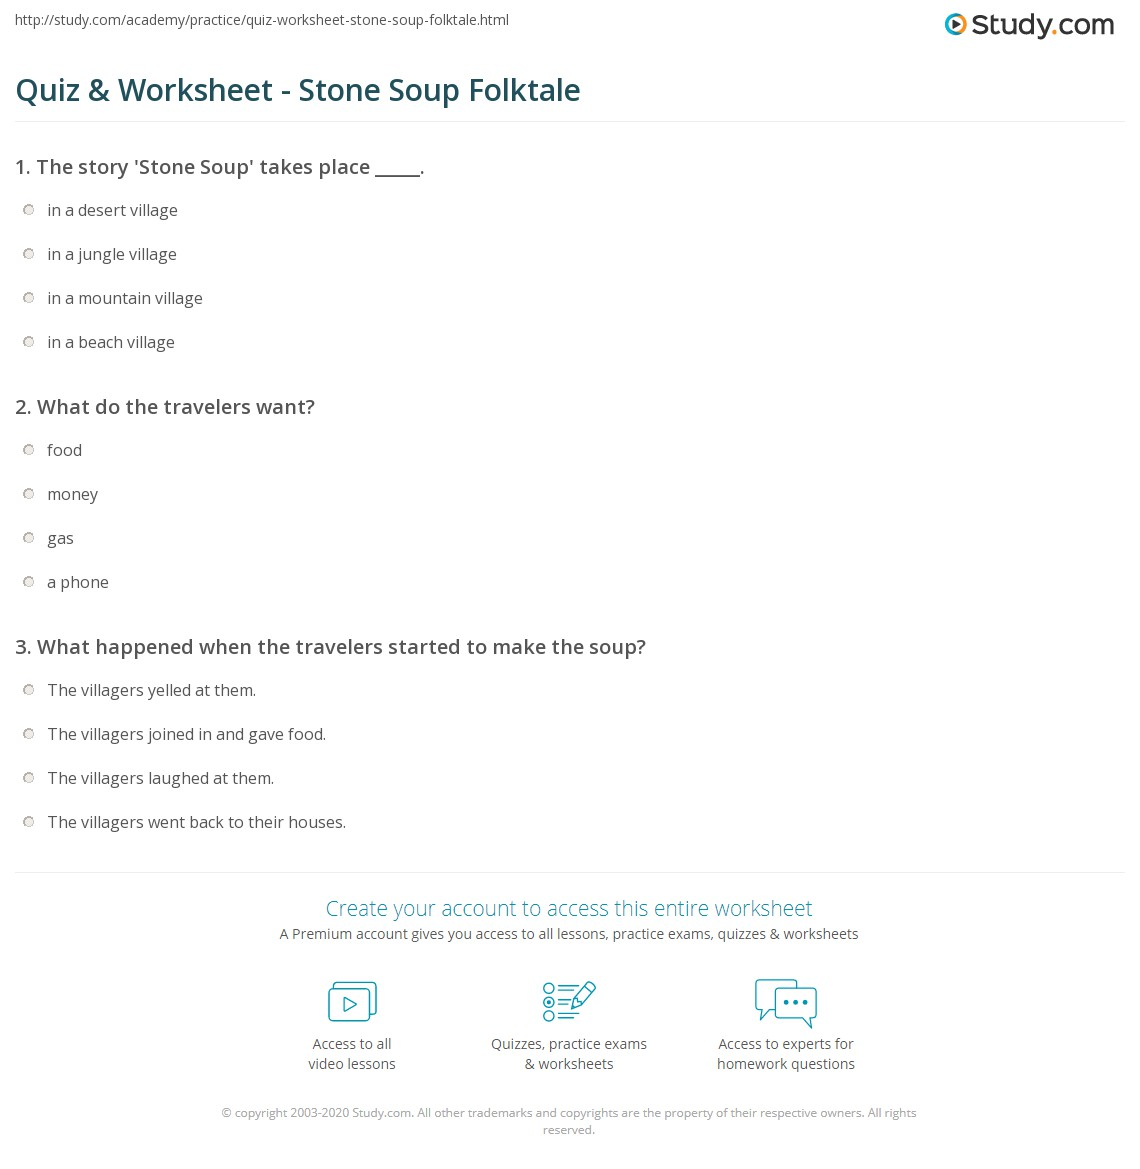 image relating to Stone Soup Story Printable named Quiz Worksheet - Stone Soup Folktale